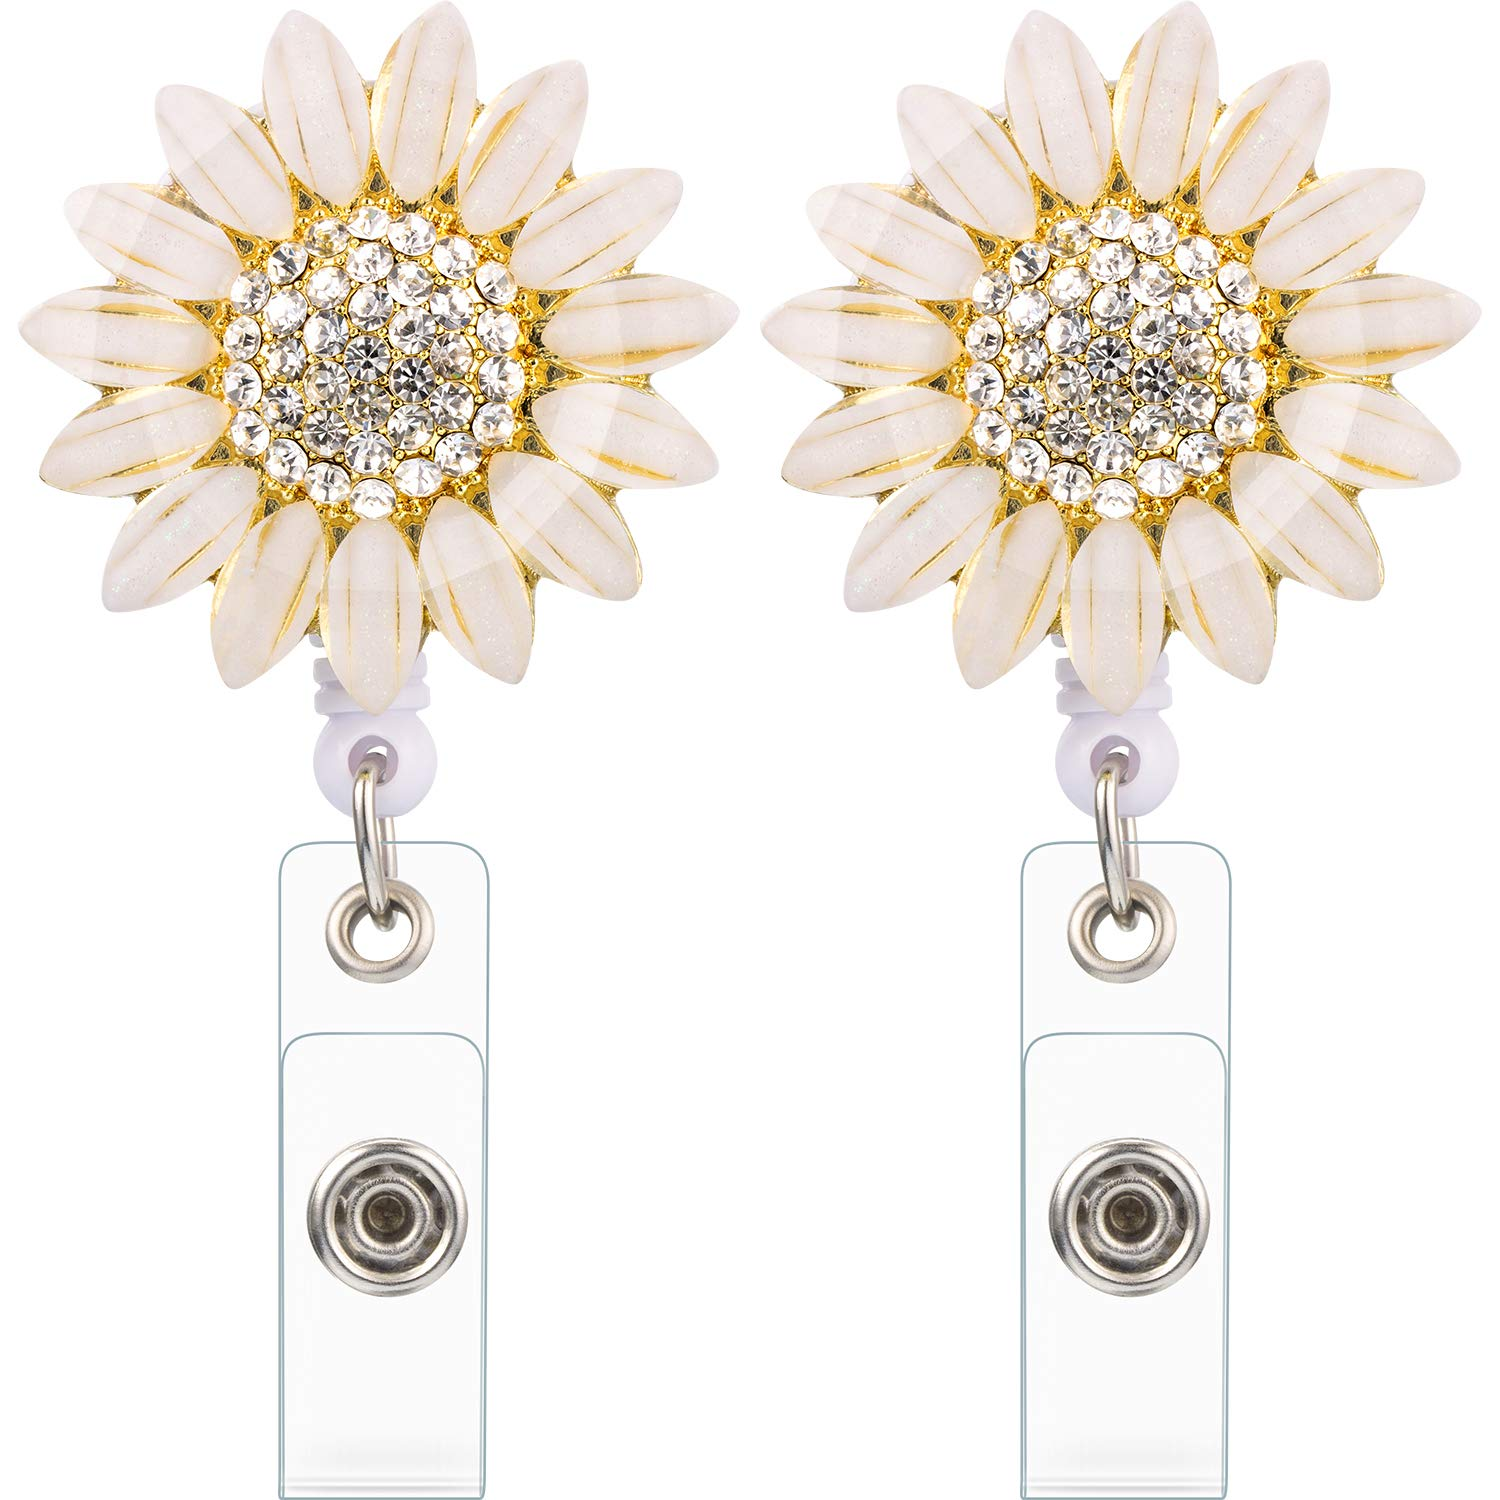 2 Pieces Rhinestone Flower Badge Reel Badge Retractable ID Card Holder With Alligator Clip